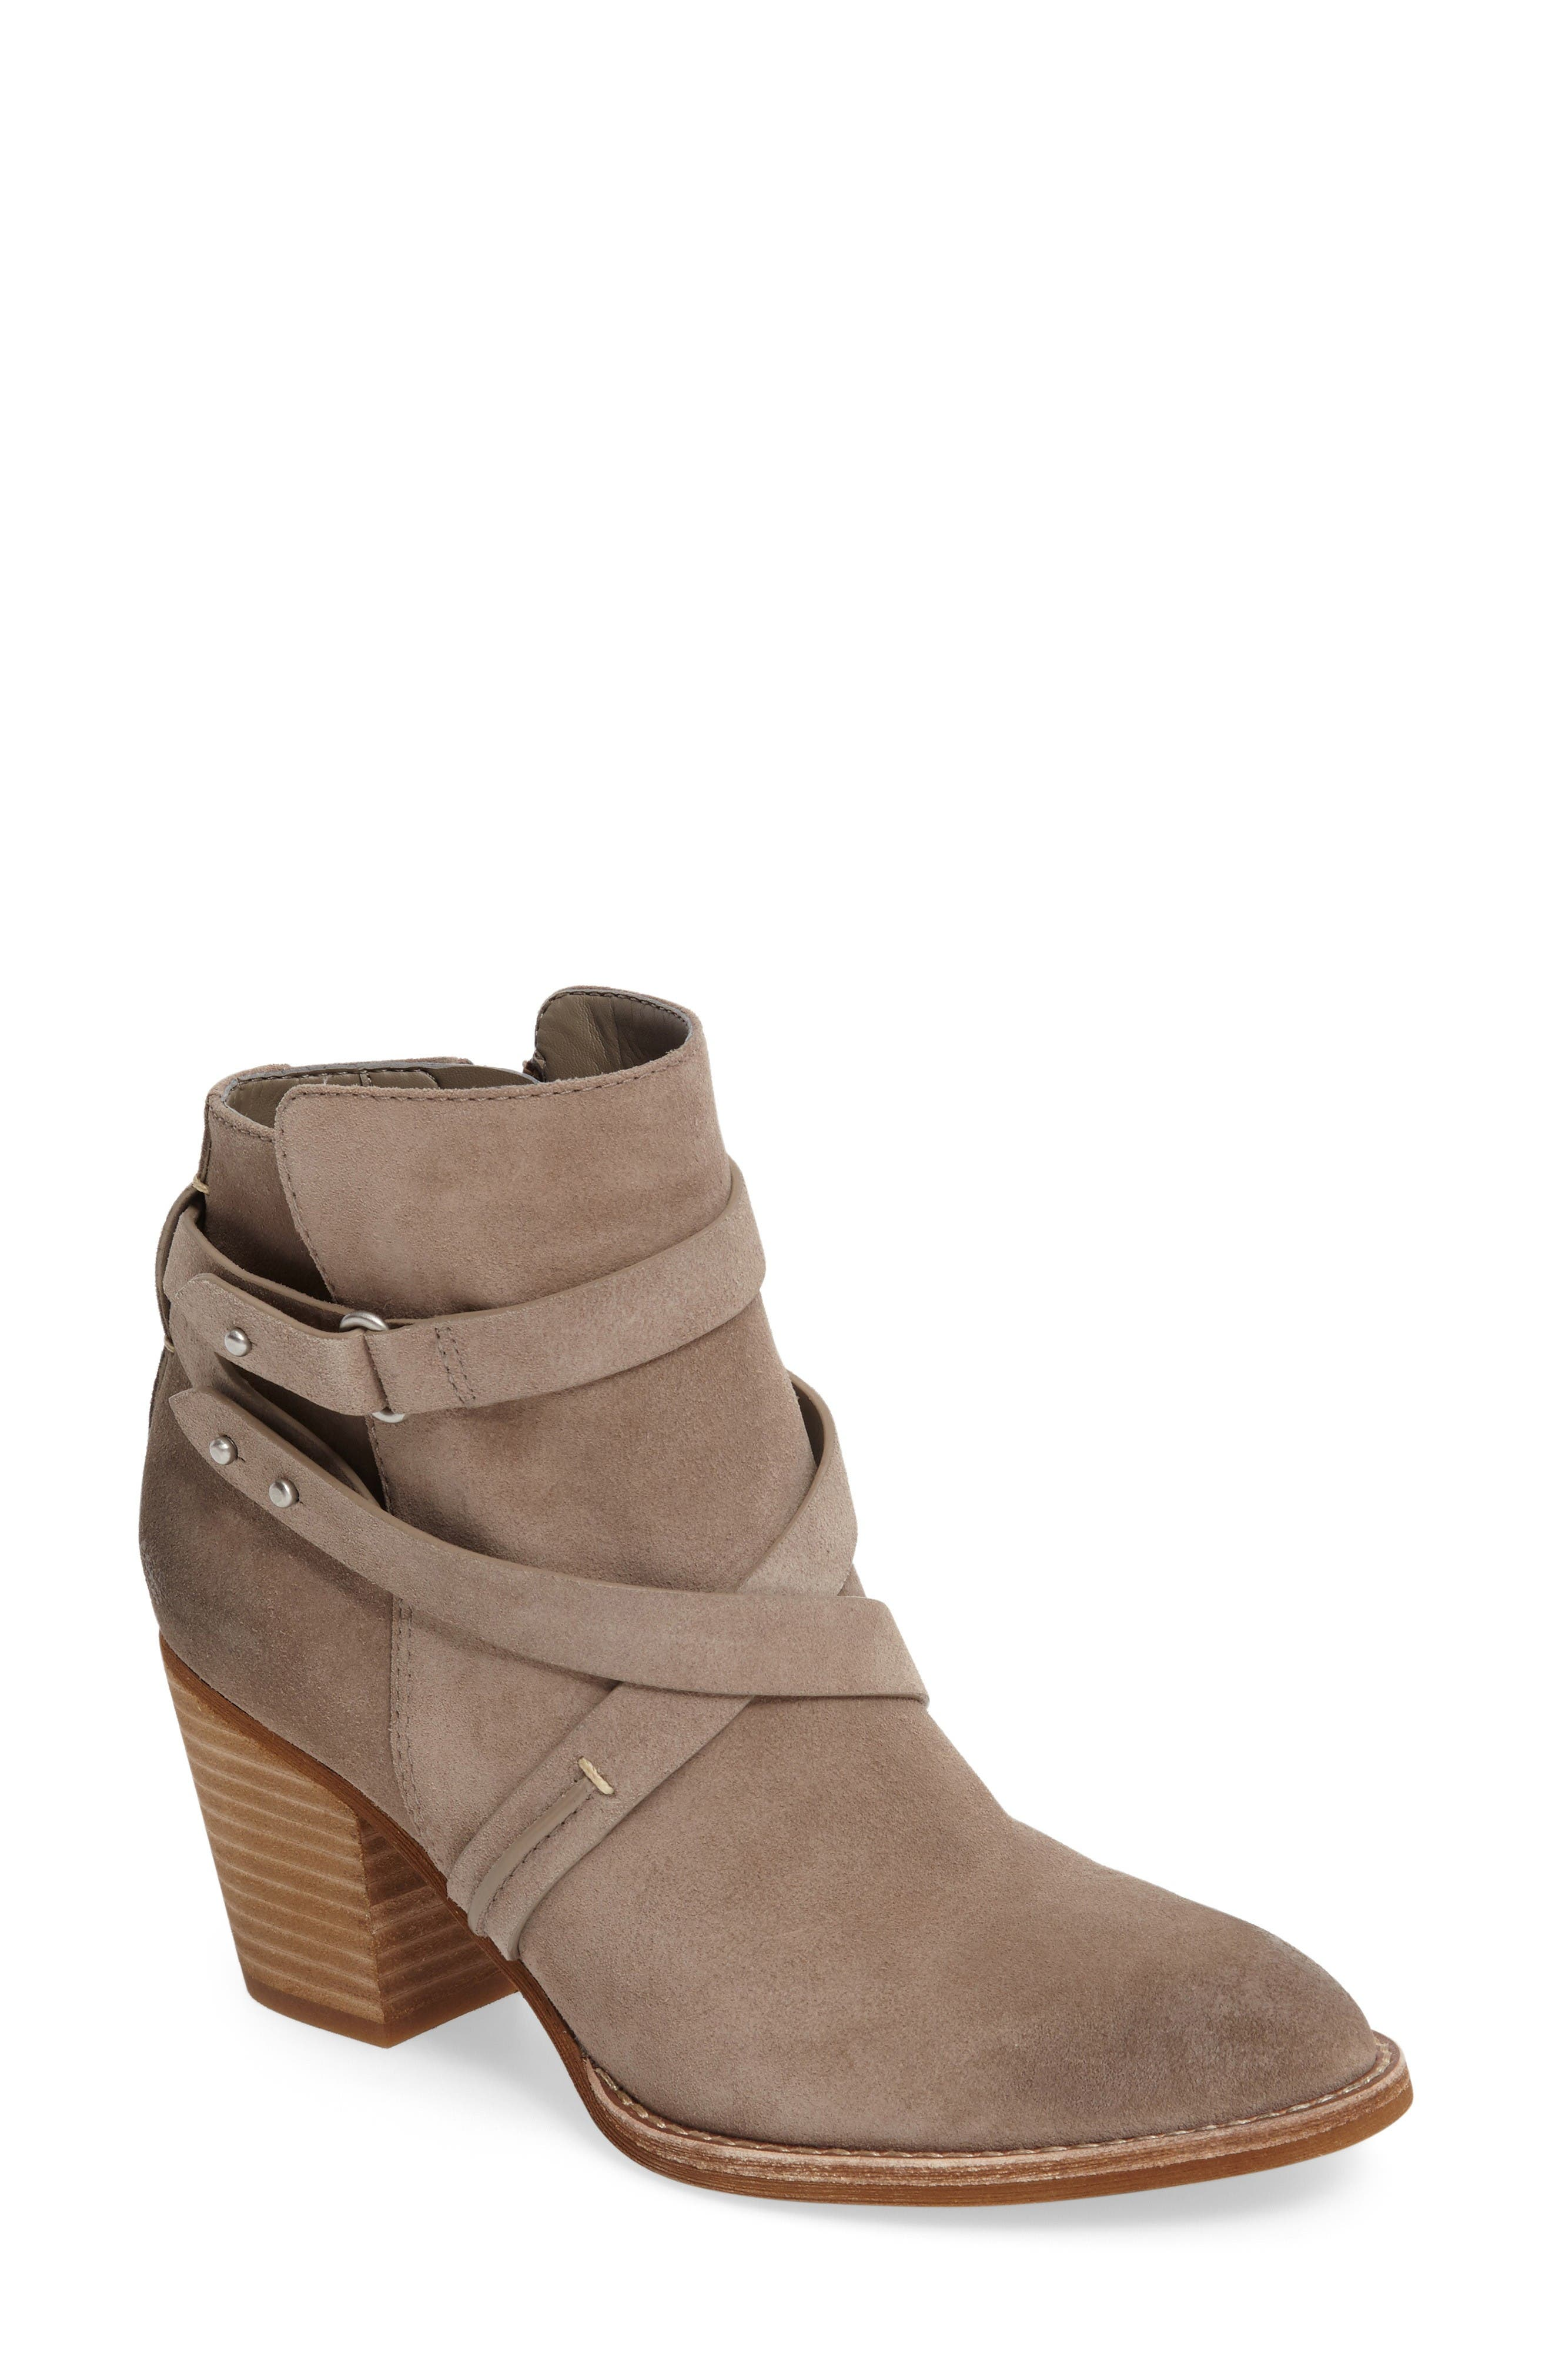 Merton Bootie,                         Main,                         color, Putty